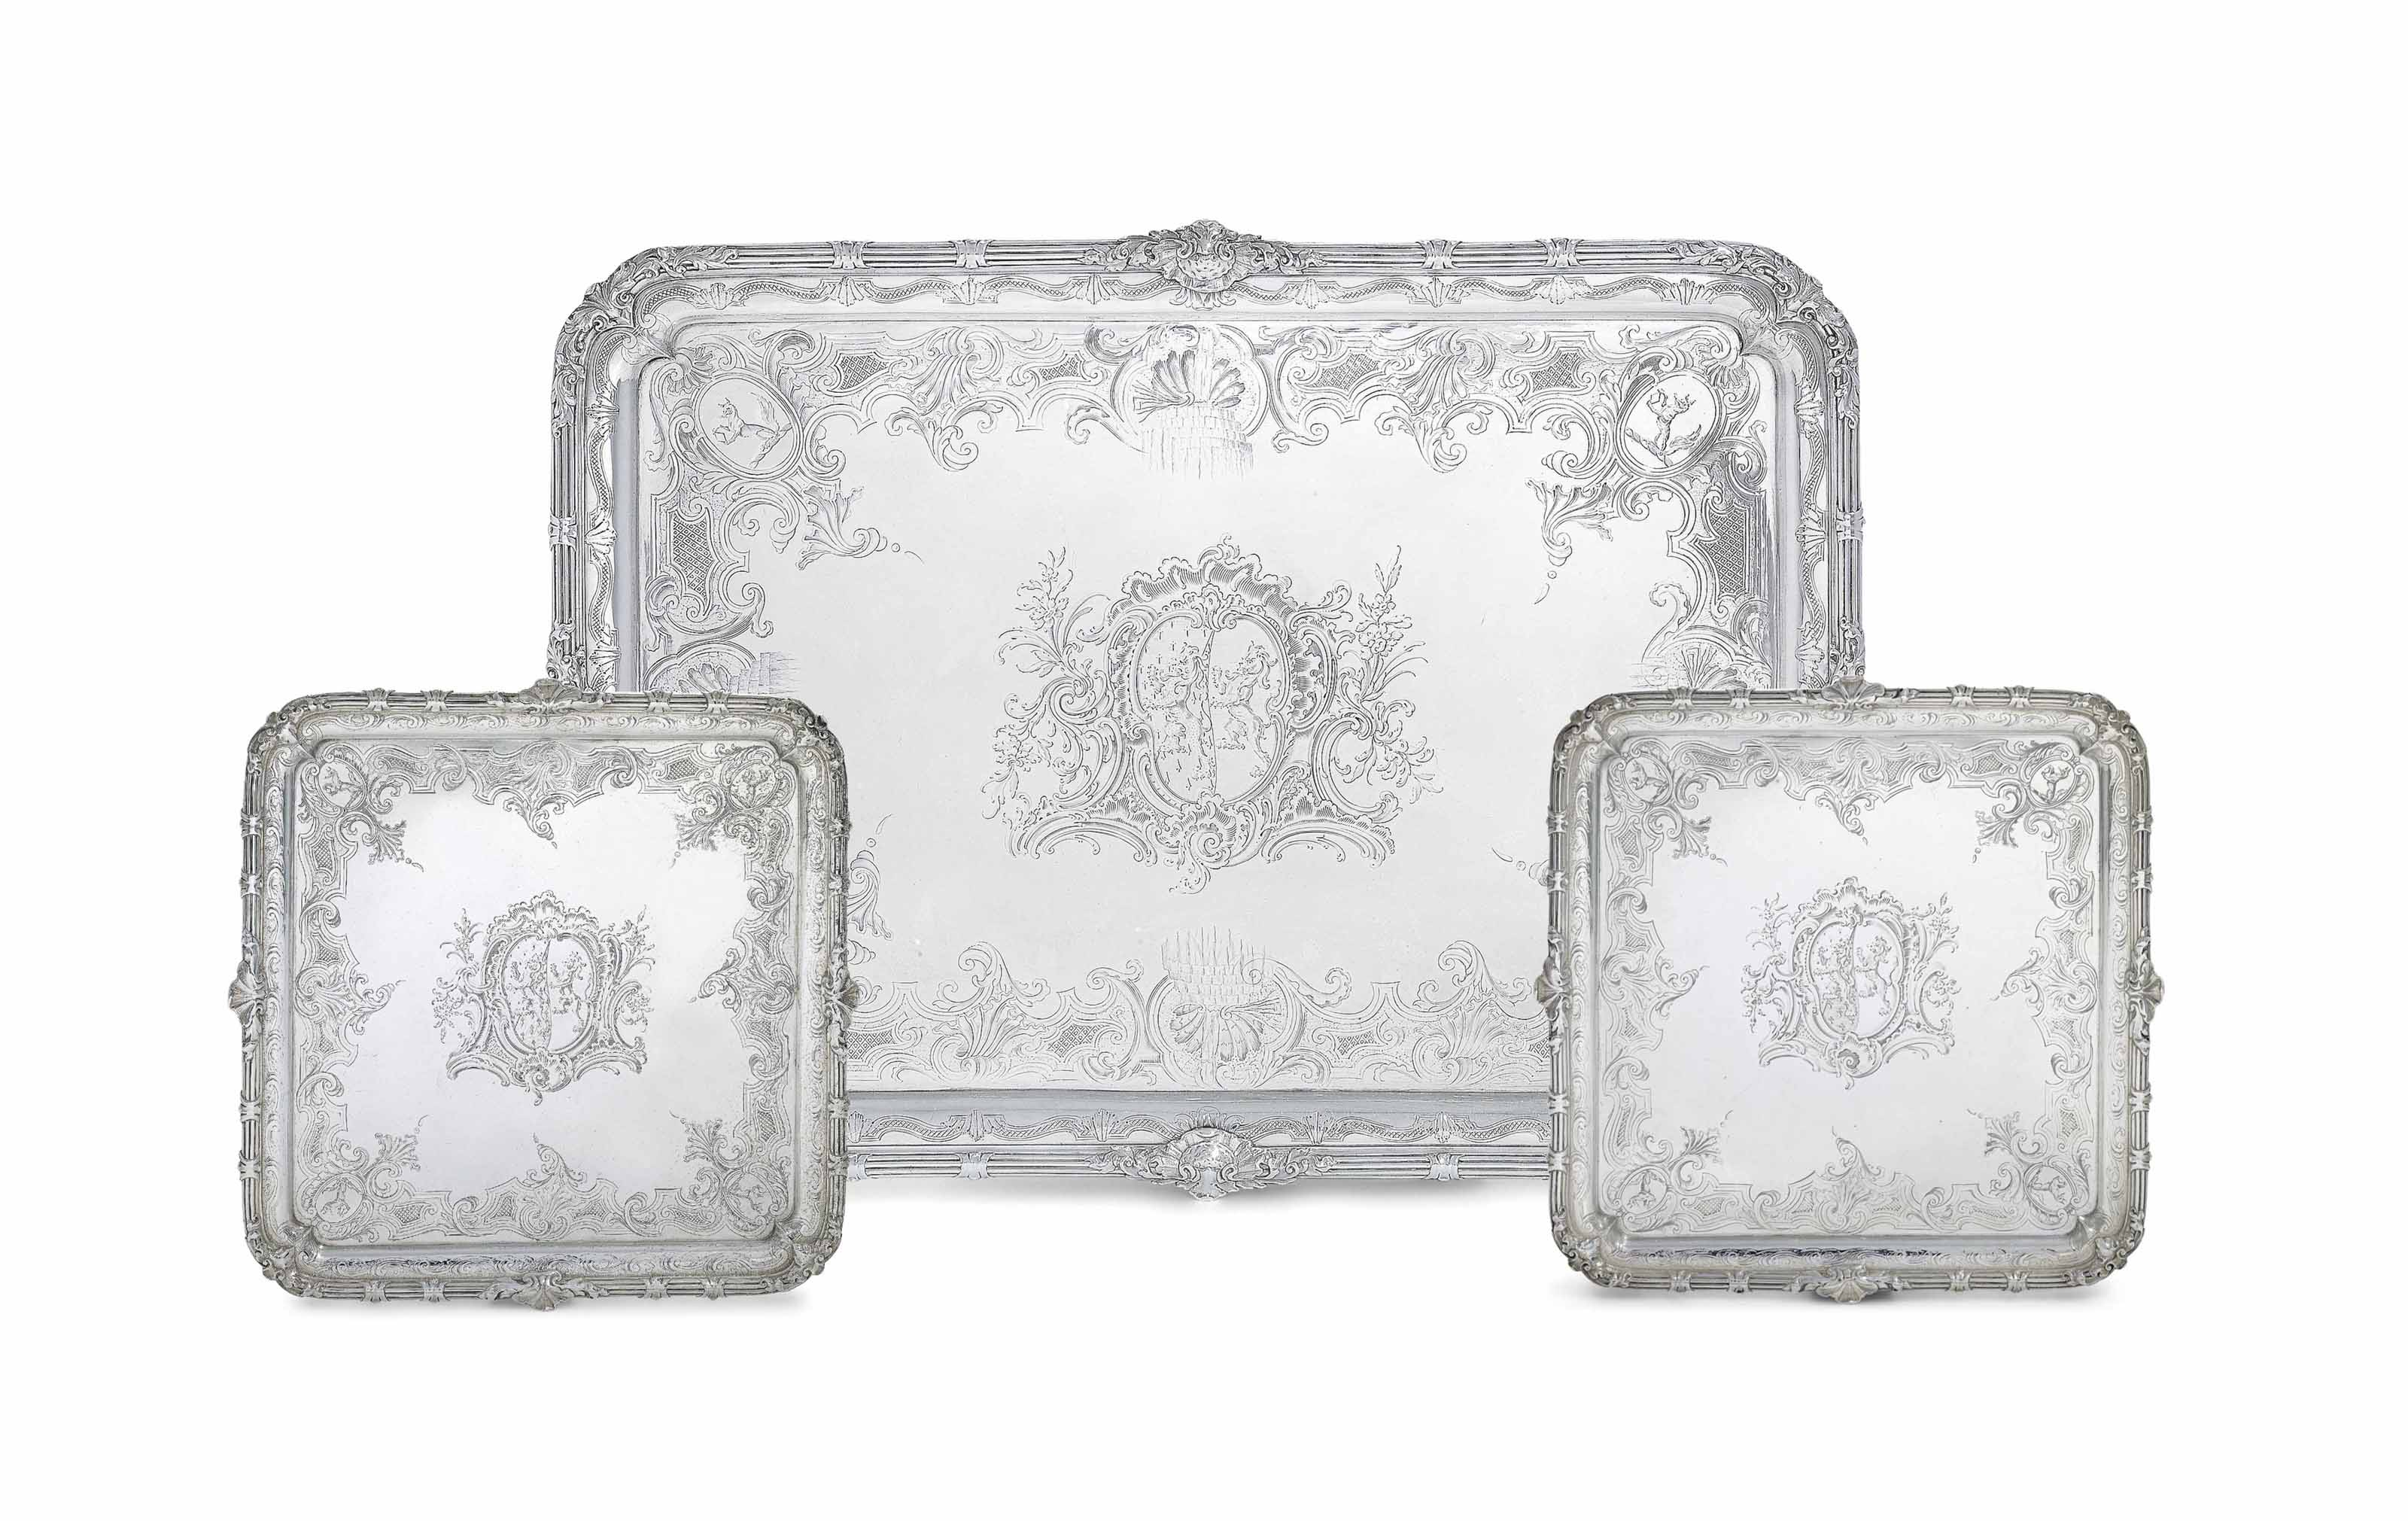 AN IMPORTANT GEORGE II SILVER TRAY AND A PAIR OF SALVERS EN SUITE